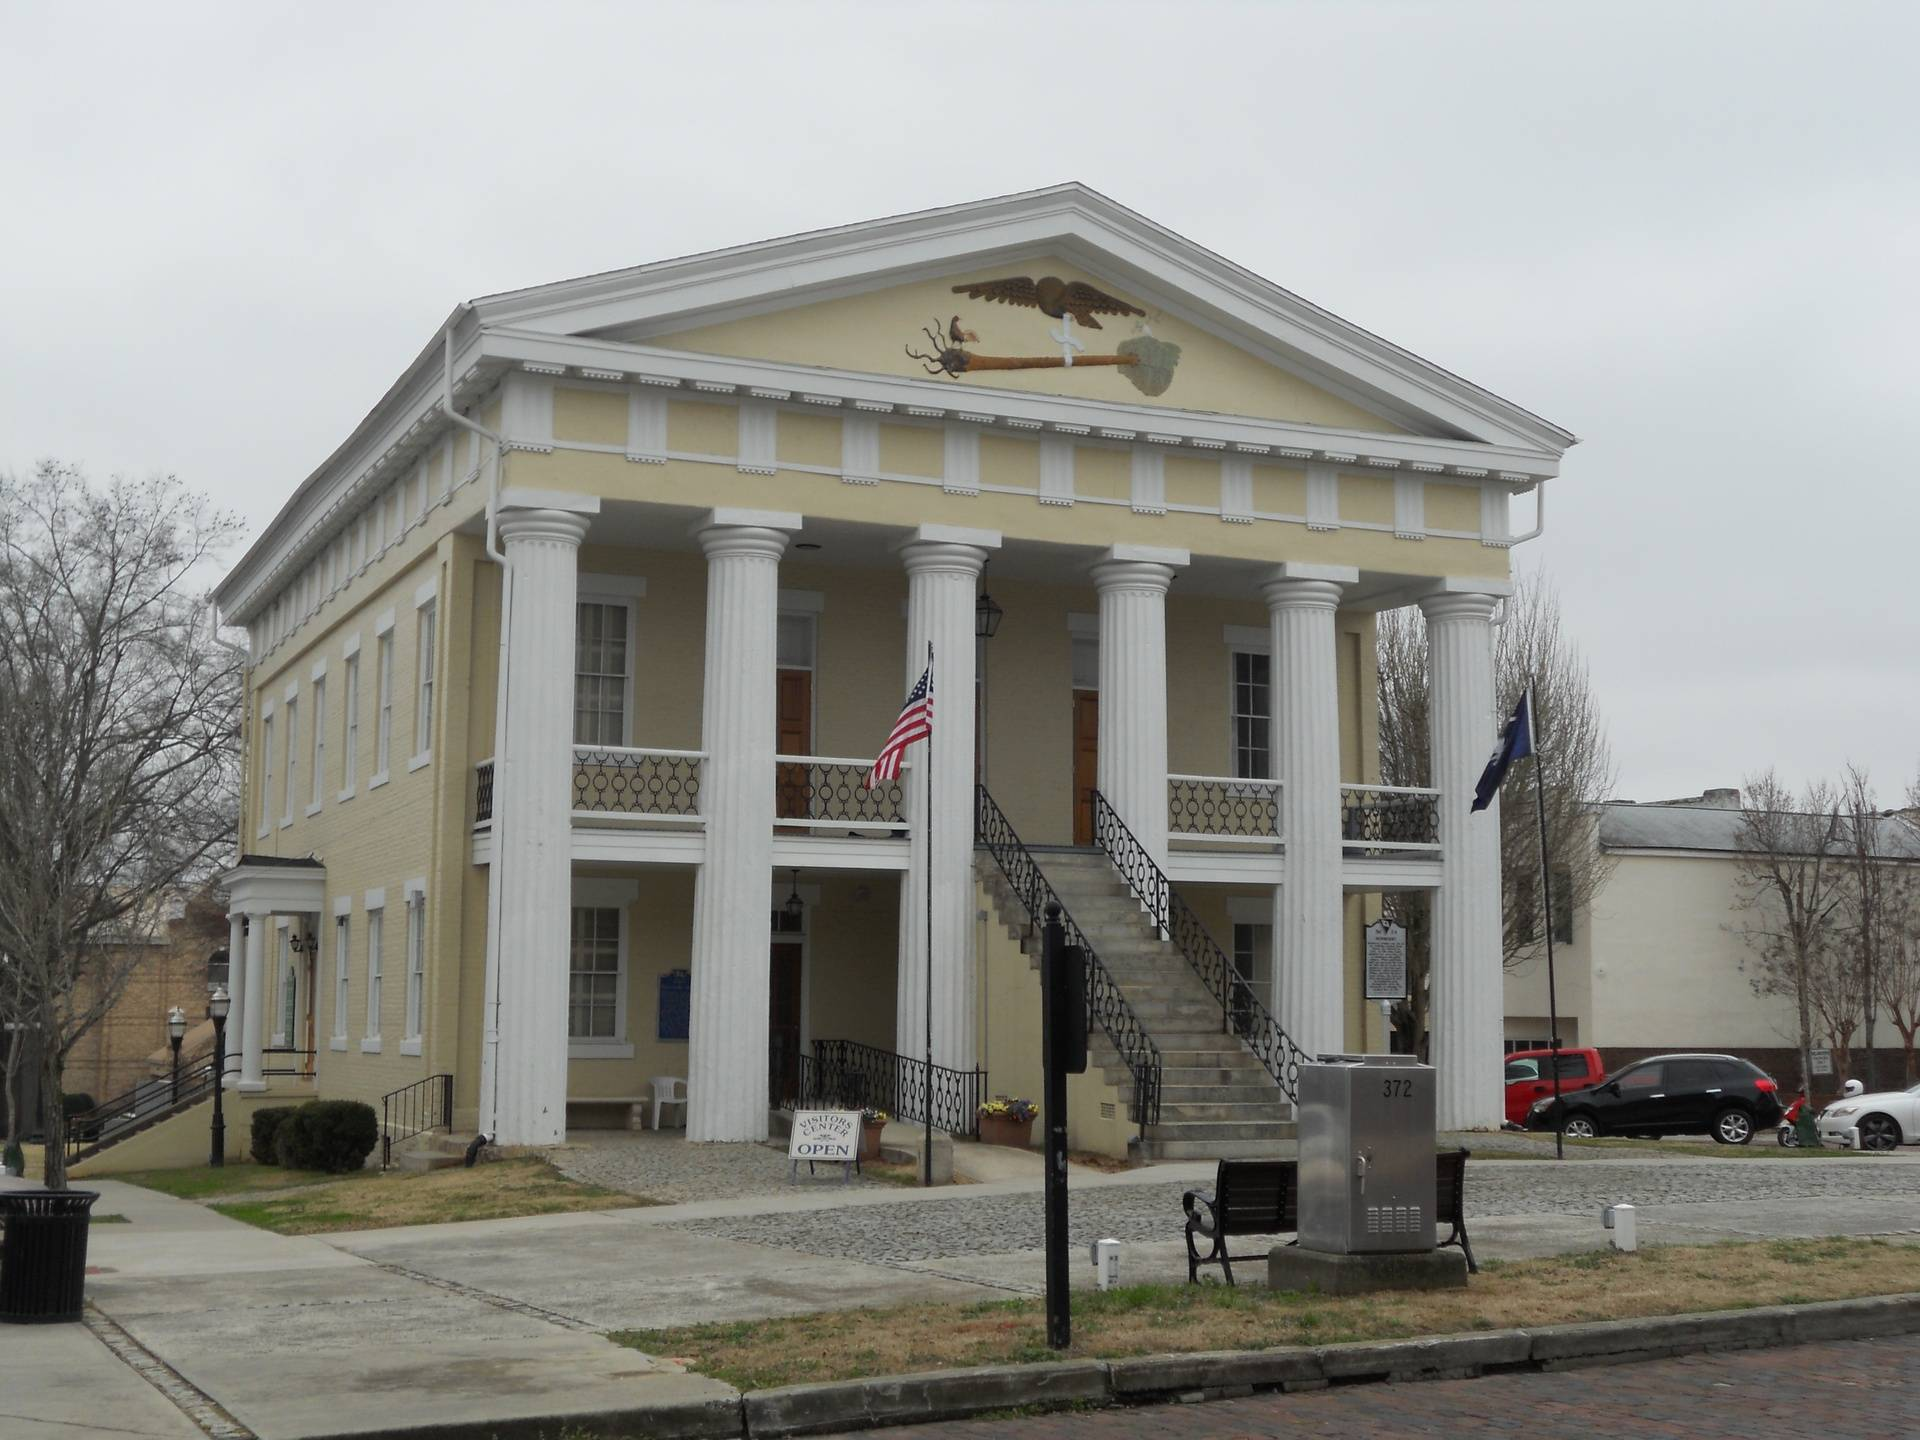 Newberry County Chamber of Commerce and Visitors Center, 1209 Caldwell Street, PO Box 396, Newberry, SC, 29108